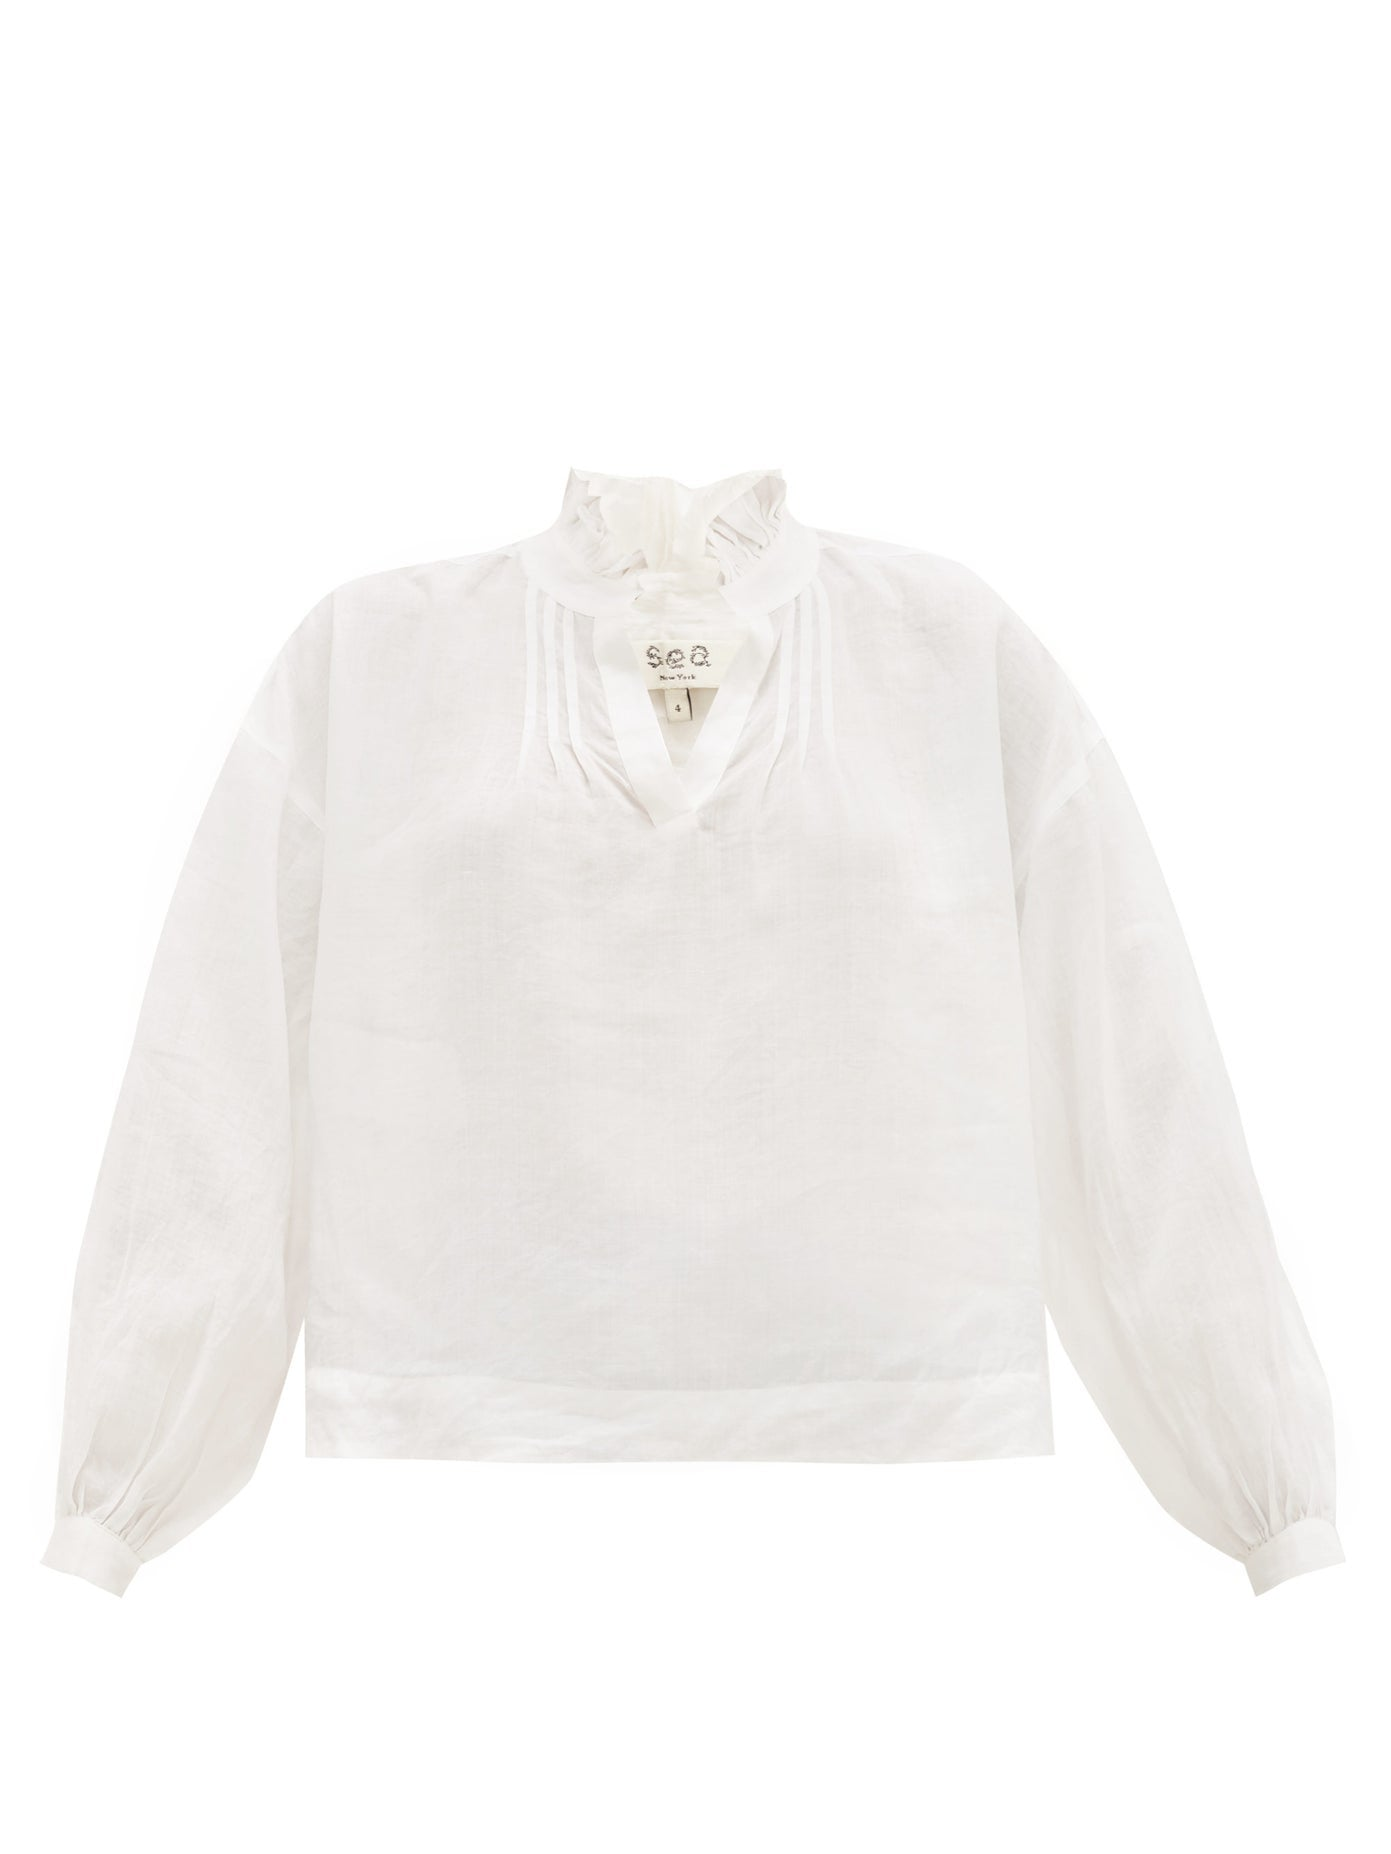 Lucy Long Sleeve Blouse in White